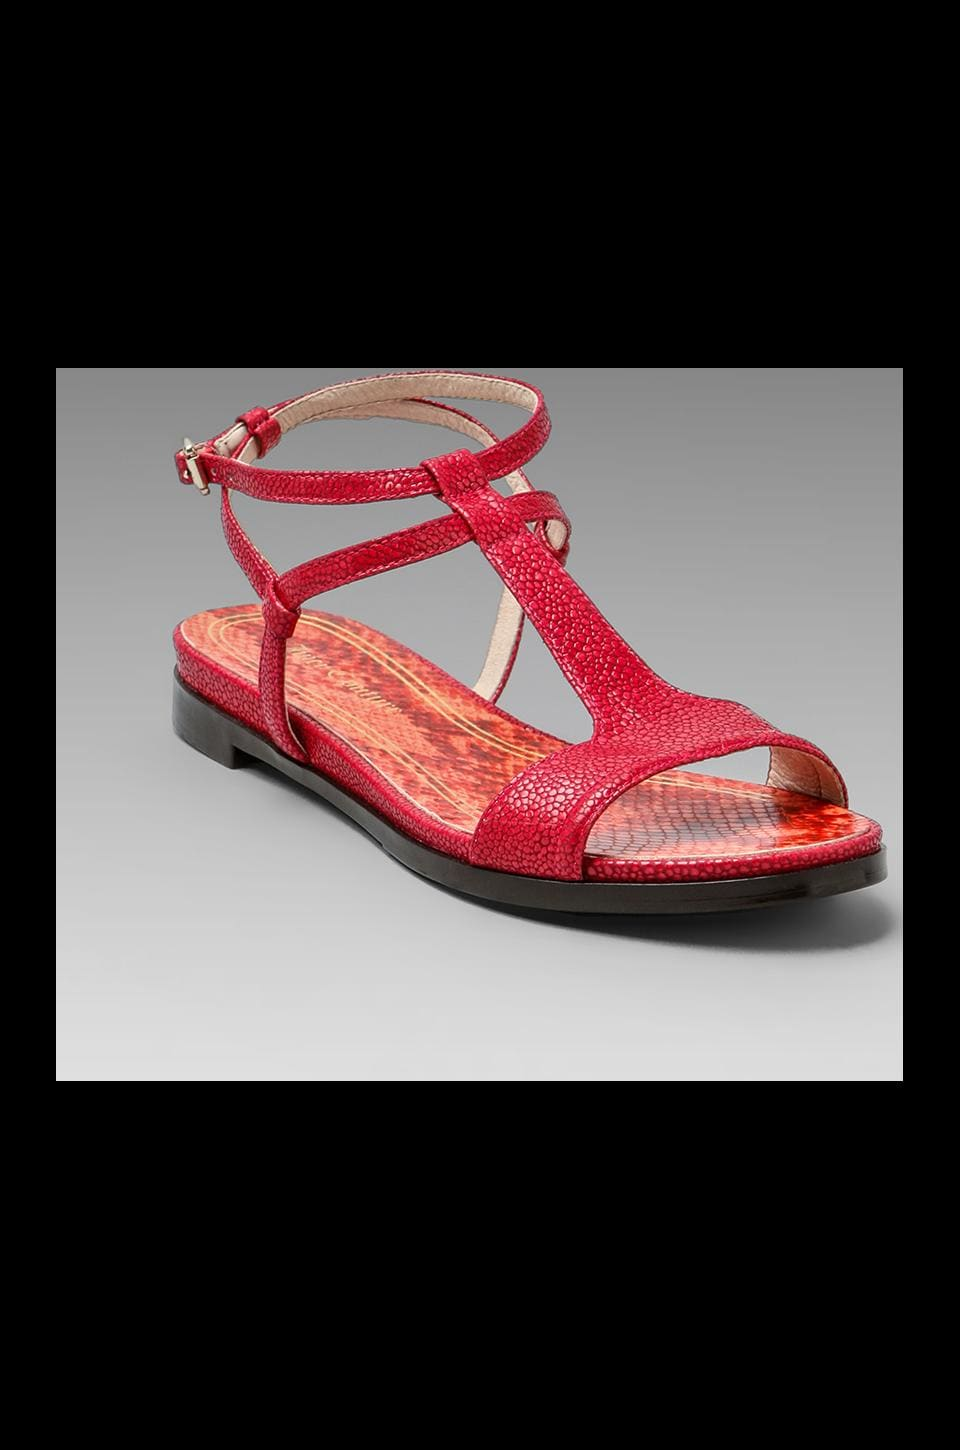 Juicy Couture Cedar Sandal in Hot Pink